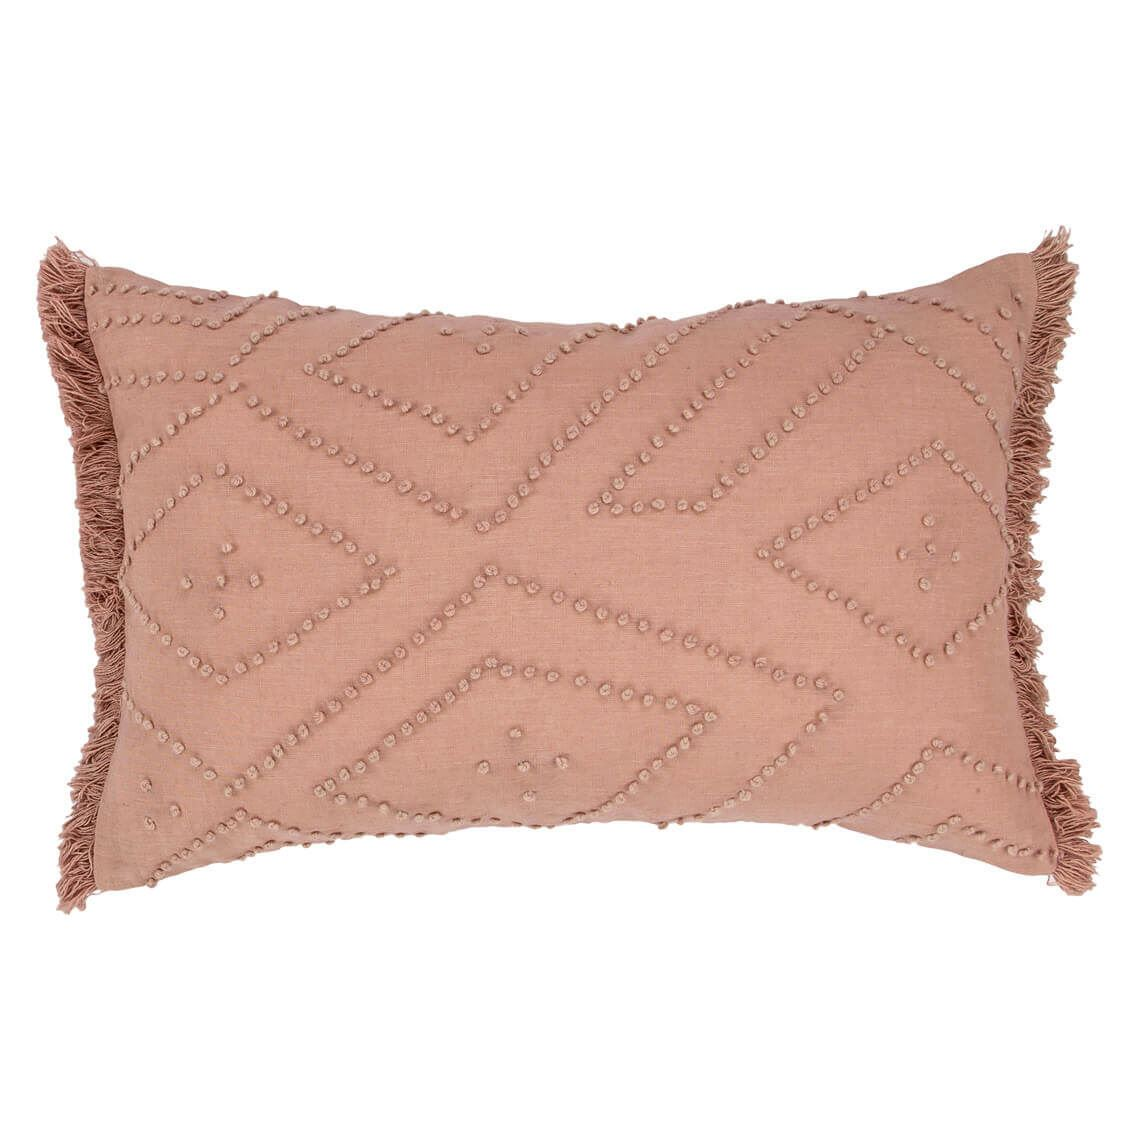 Lenzo Cushion Size W 35cm x D 55cm x H 14cm in Blush 50%cotton/50%linen Freedom